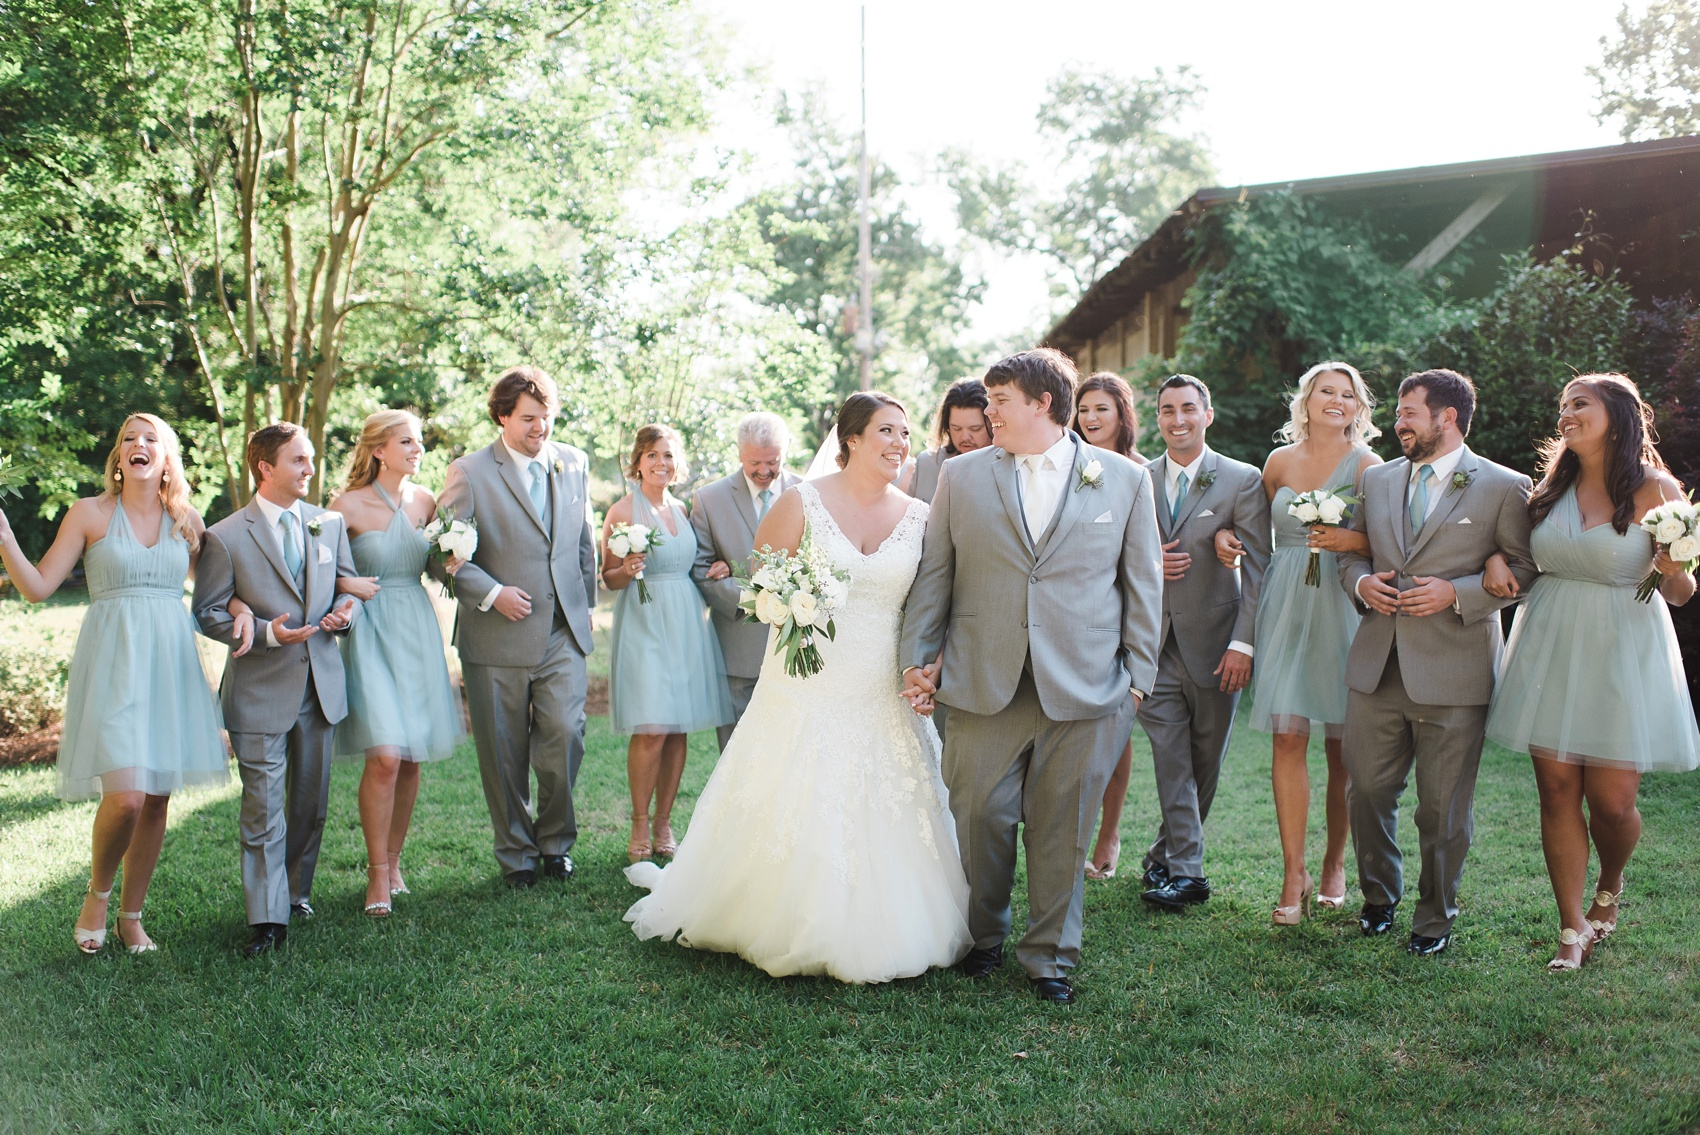 columbia_wedding_photographer_0304.jpg